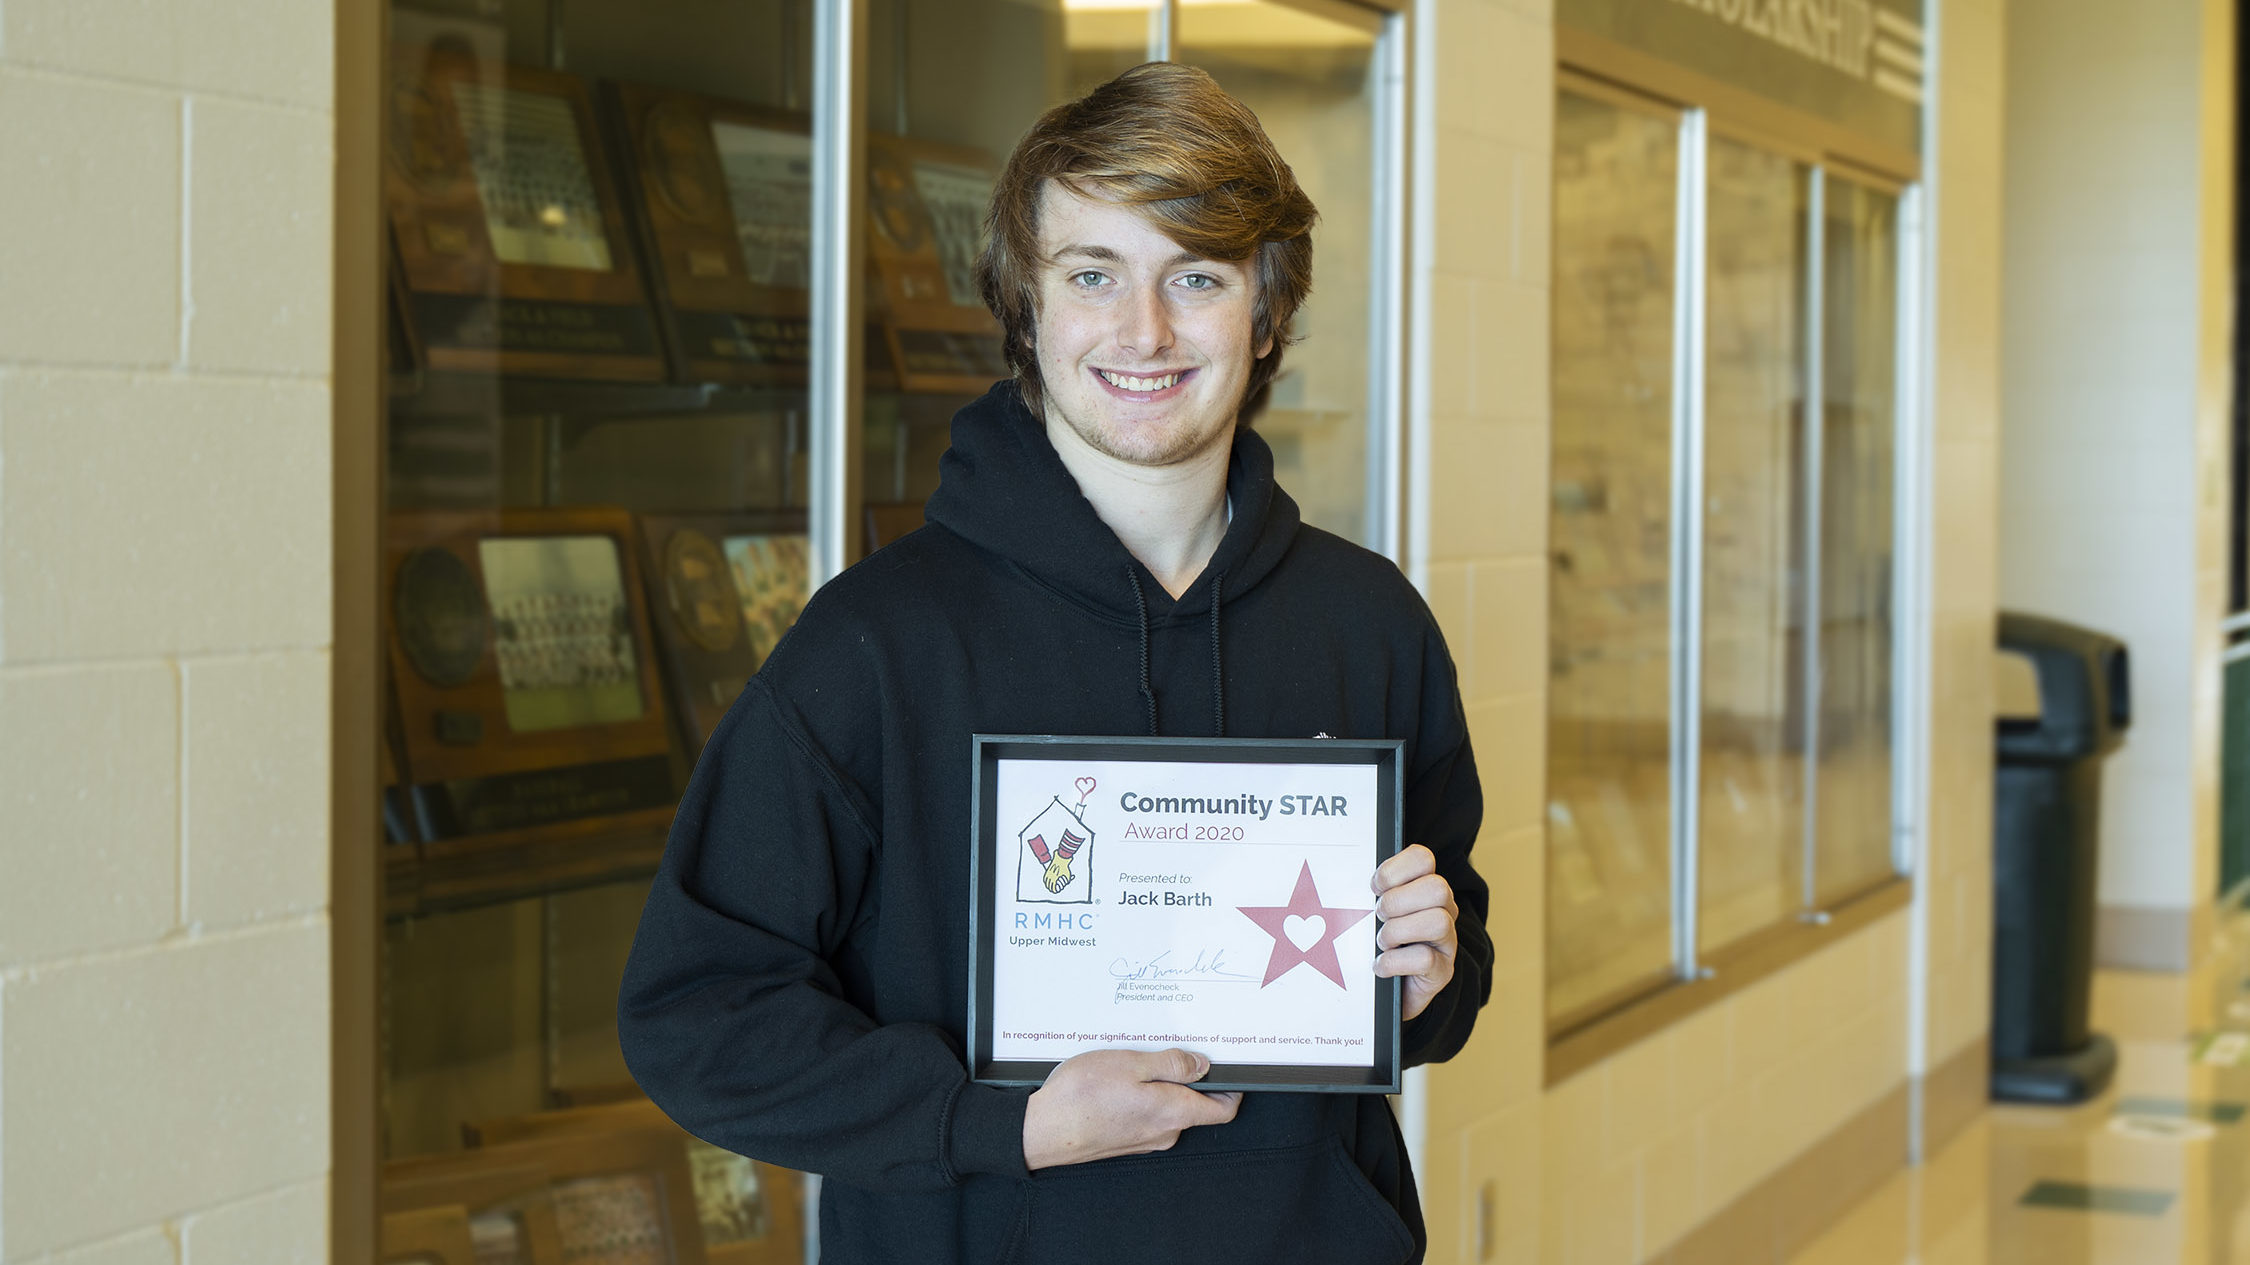 Barth Receives Community Star Award Featured Image.